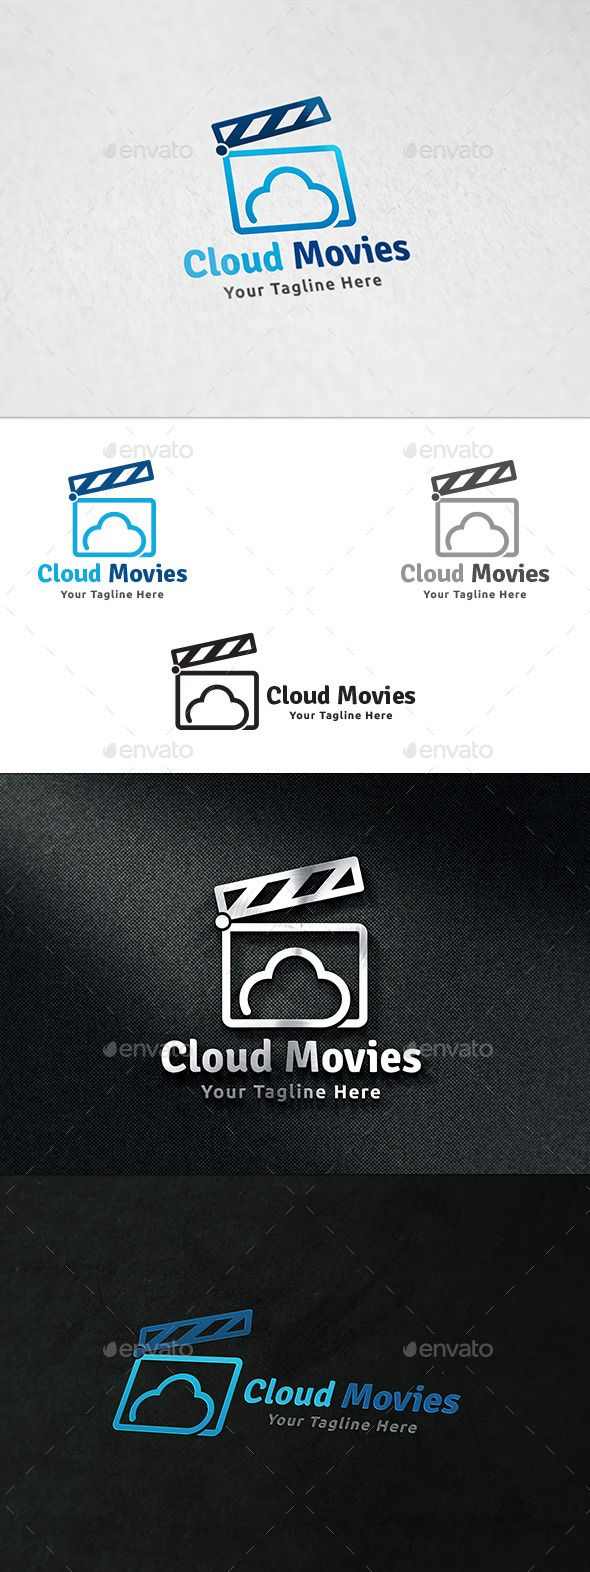 Cloud Movies - Logo Template